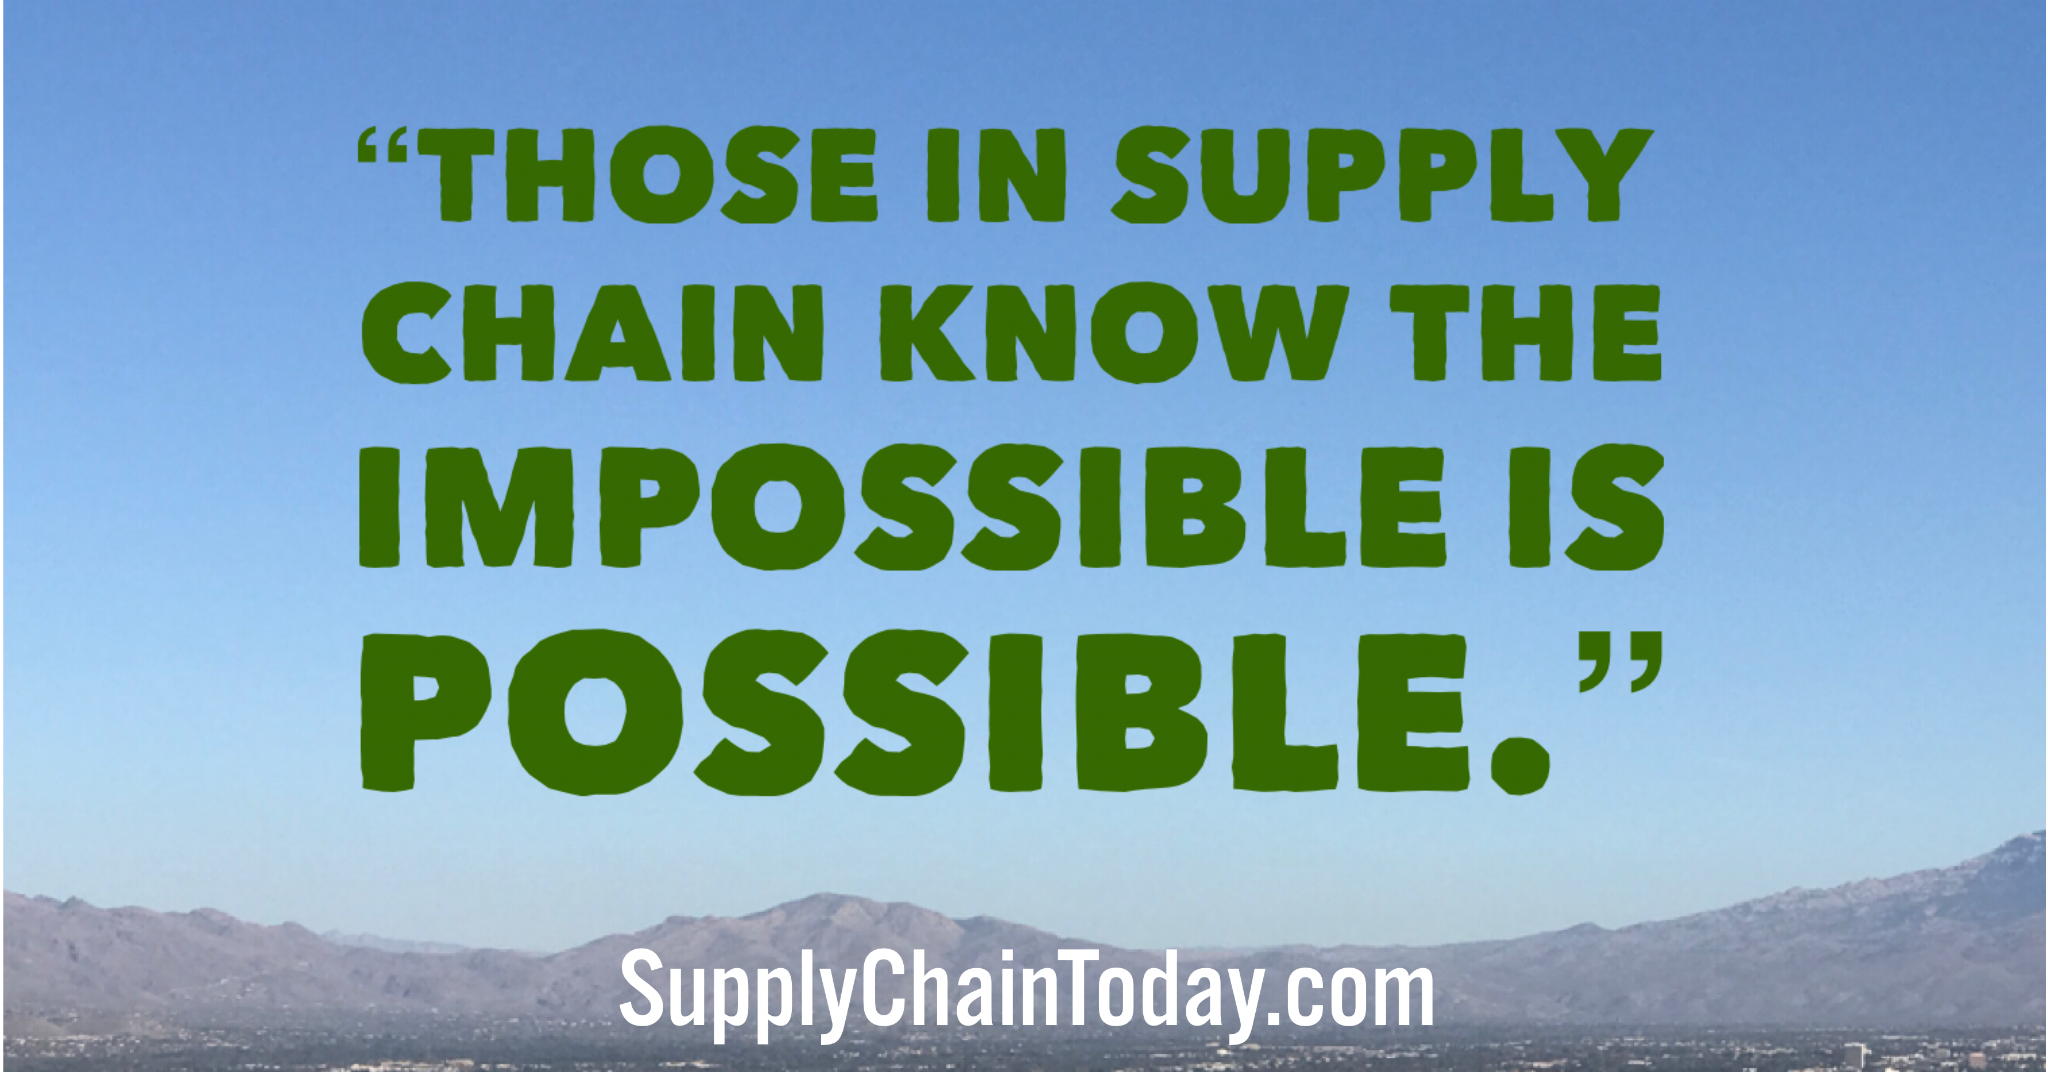 Supply Chain Quotes The Importance Of Supply Chain In The C Suite Supply Chain Chain Management What Is Supply Chain